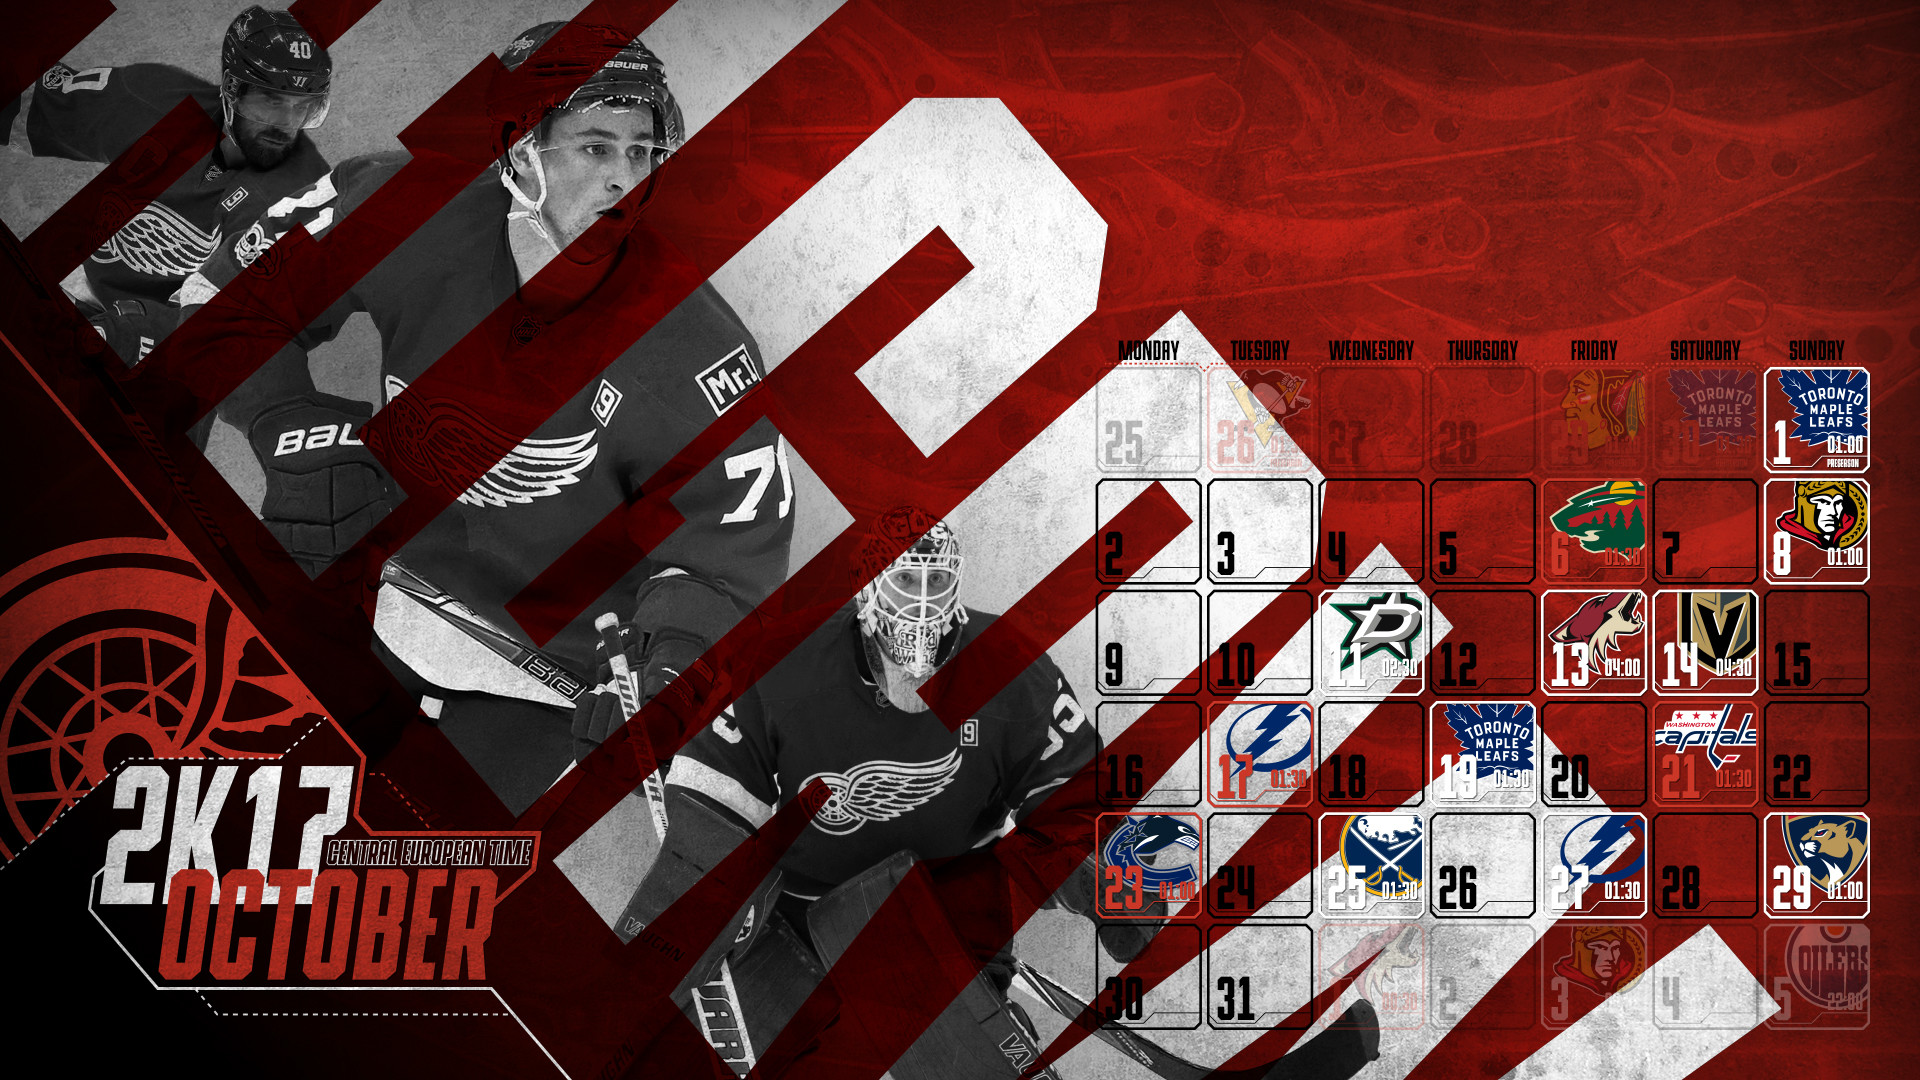 1920x1080 Schedule Wallpaper for the Detroit Red Wings Regular Season 2017. Game  times are CET.